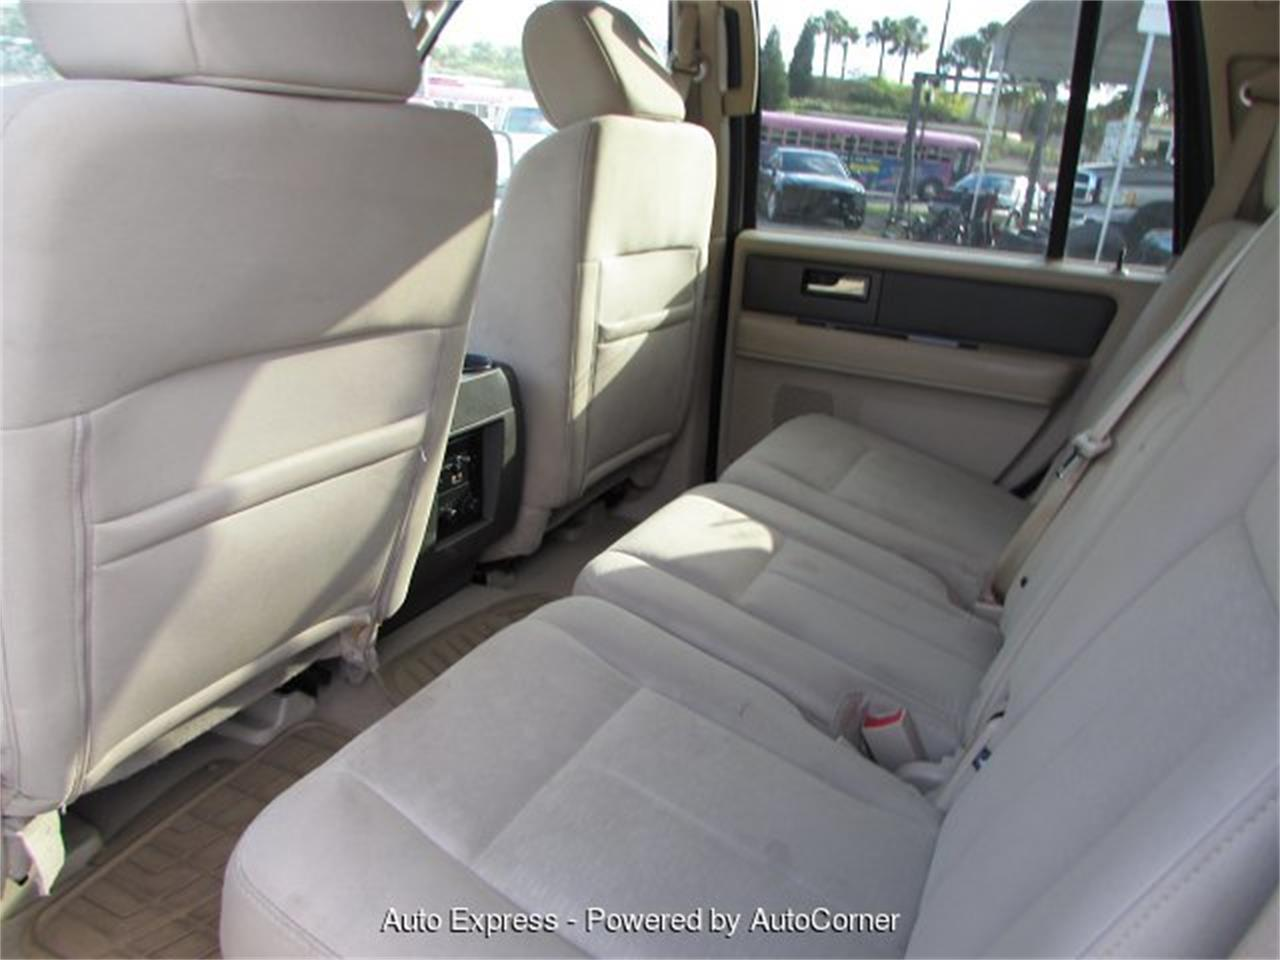 2008 Ford Expedition for sale in Orlando, FL – photo 15